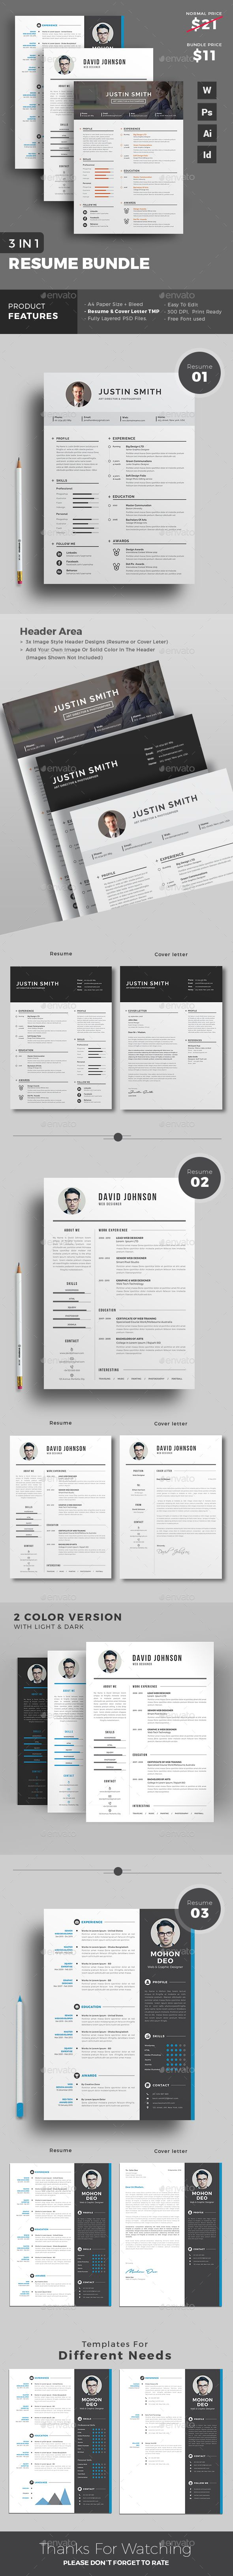 difference cv resume%0A  resume  stationary  template  word  cover  letter  cv  job